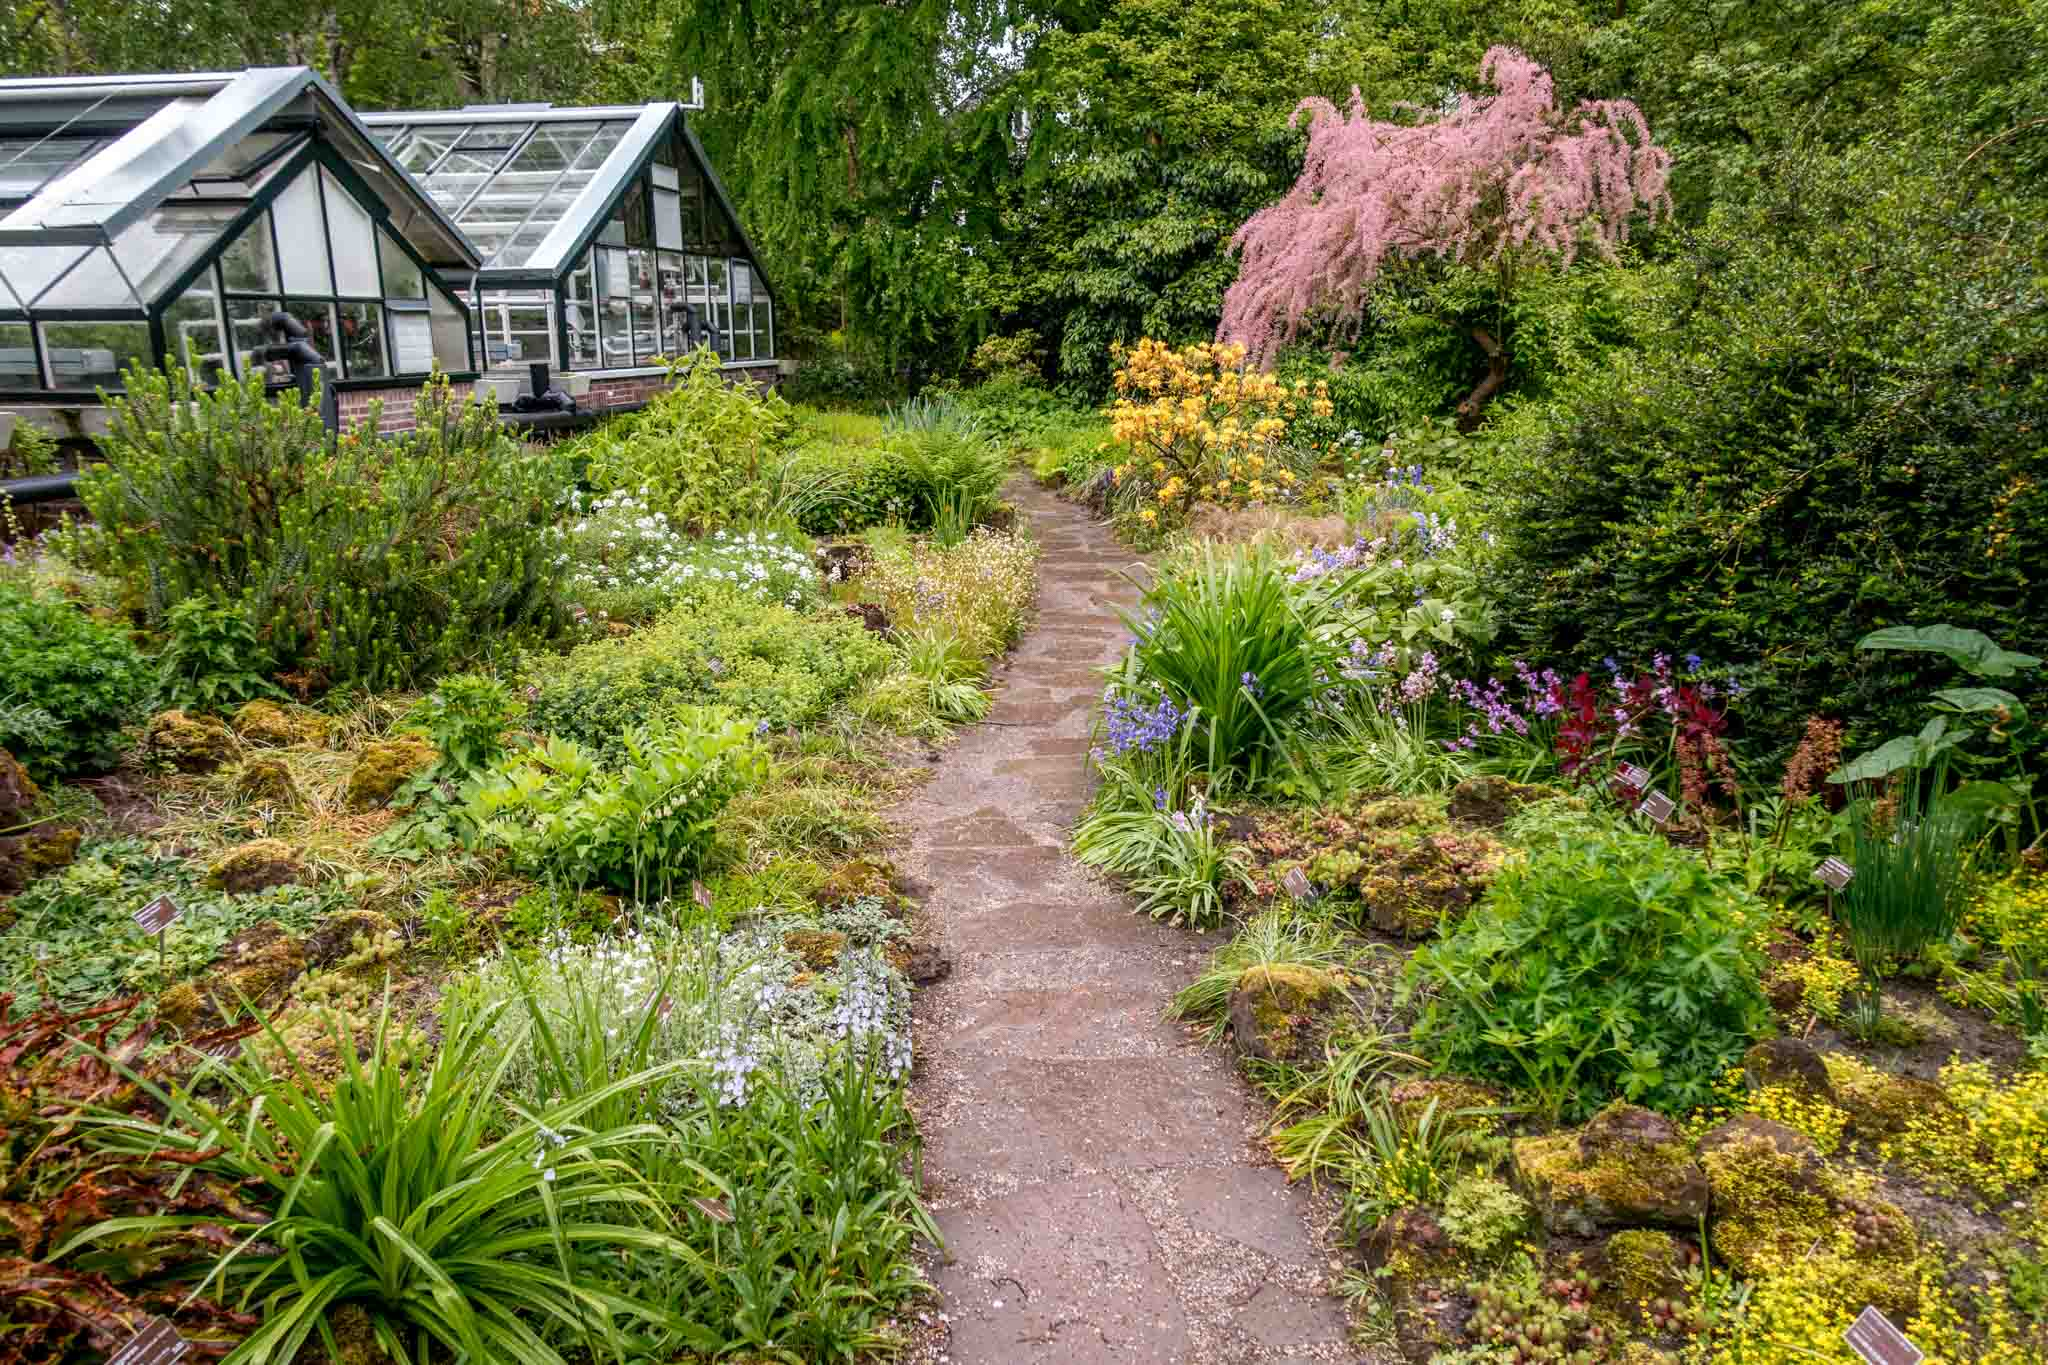 The Hortus Botanicus is filled with 6000 species of plants and trees and is where to visit in Amsterdam for lovers of the outdoors